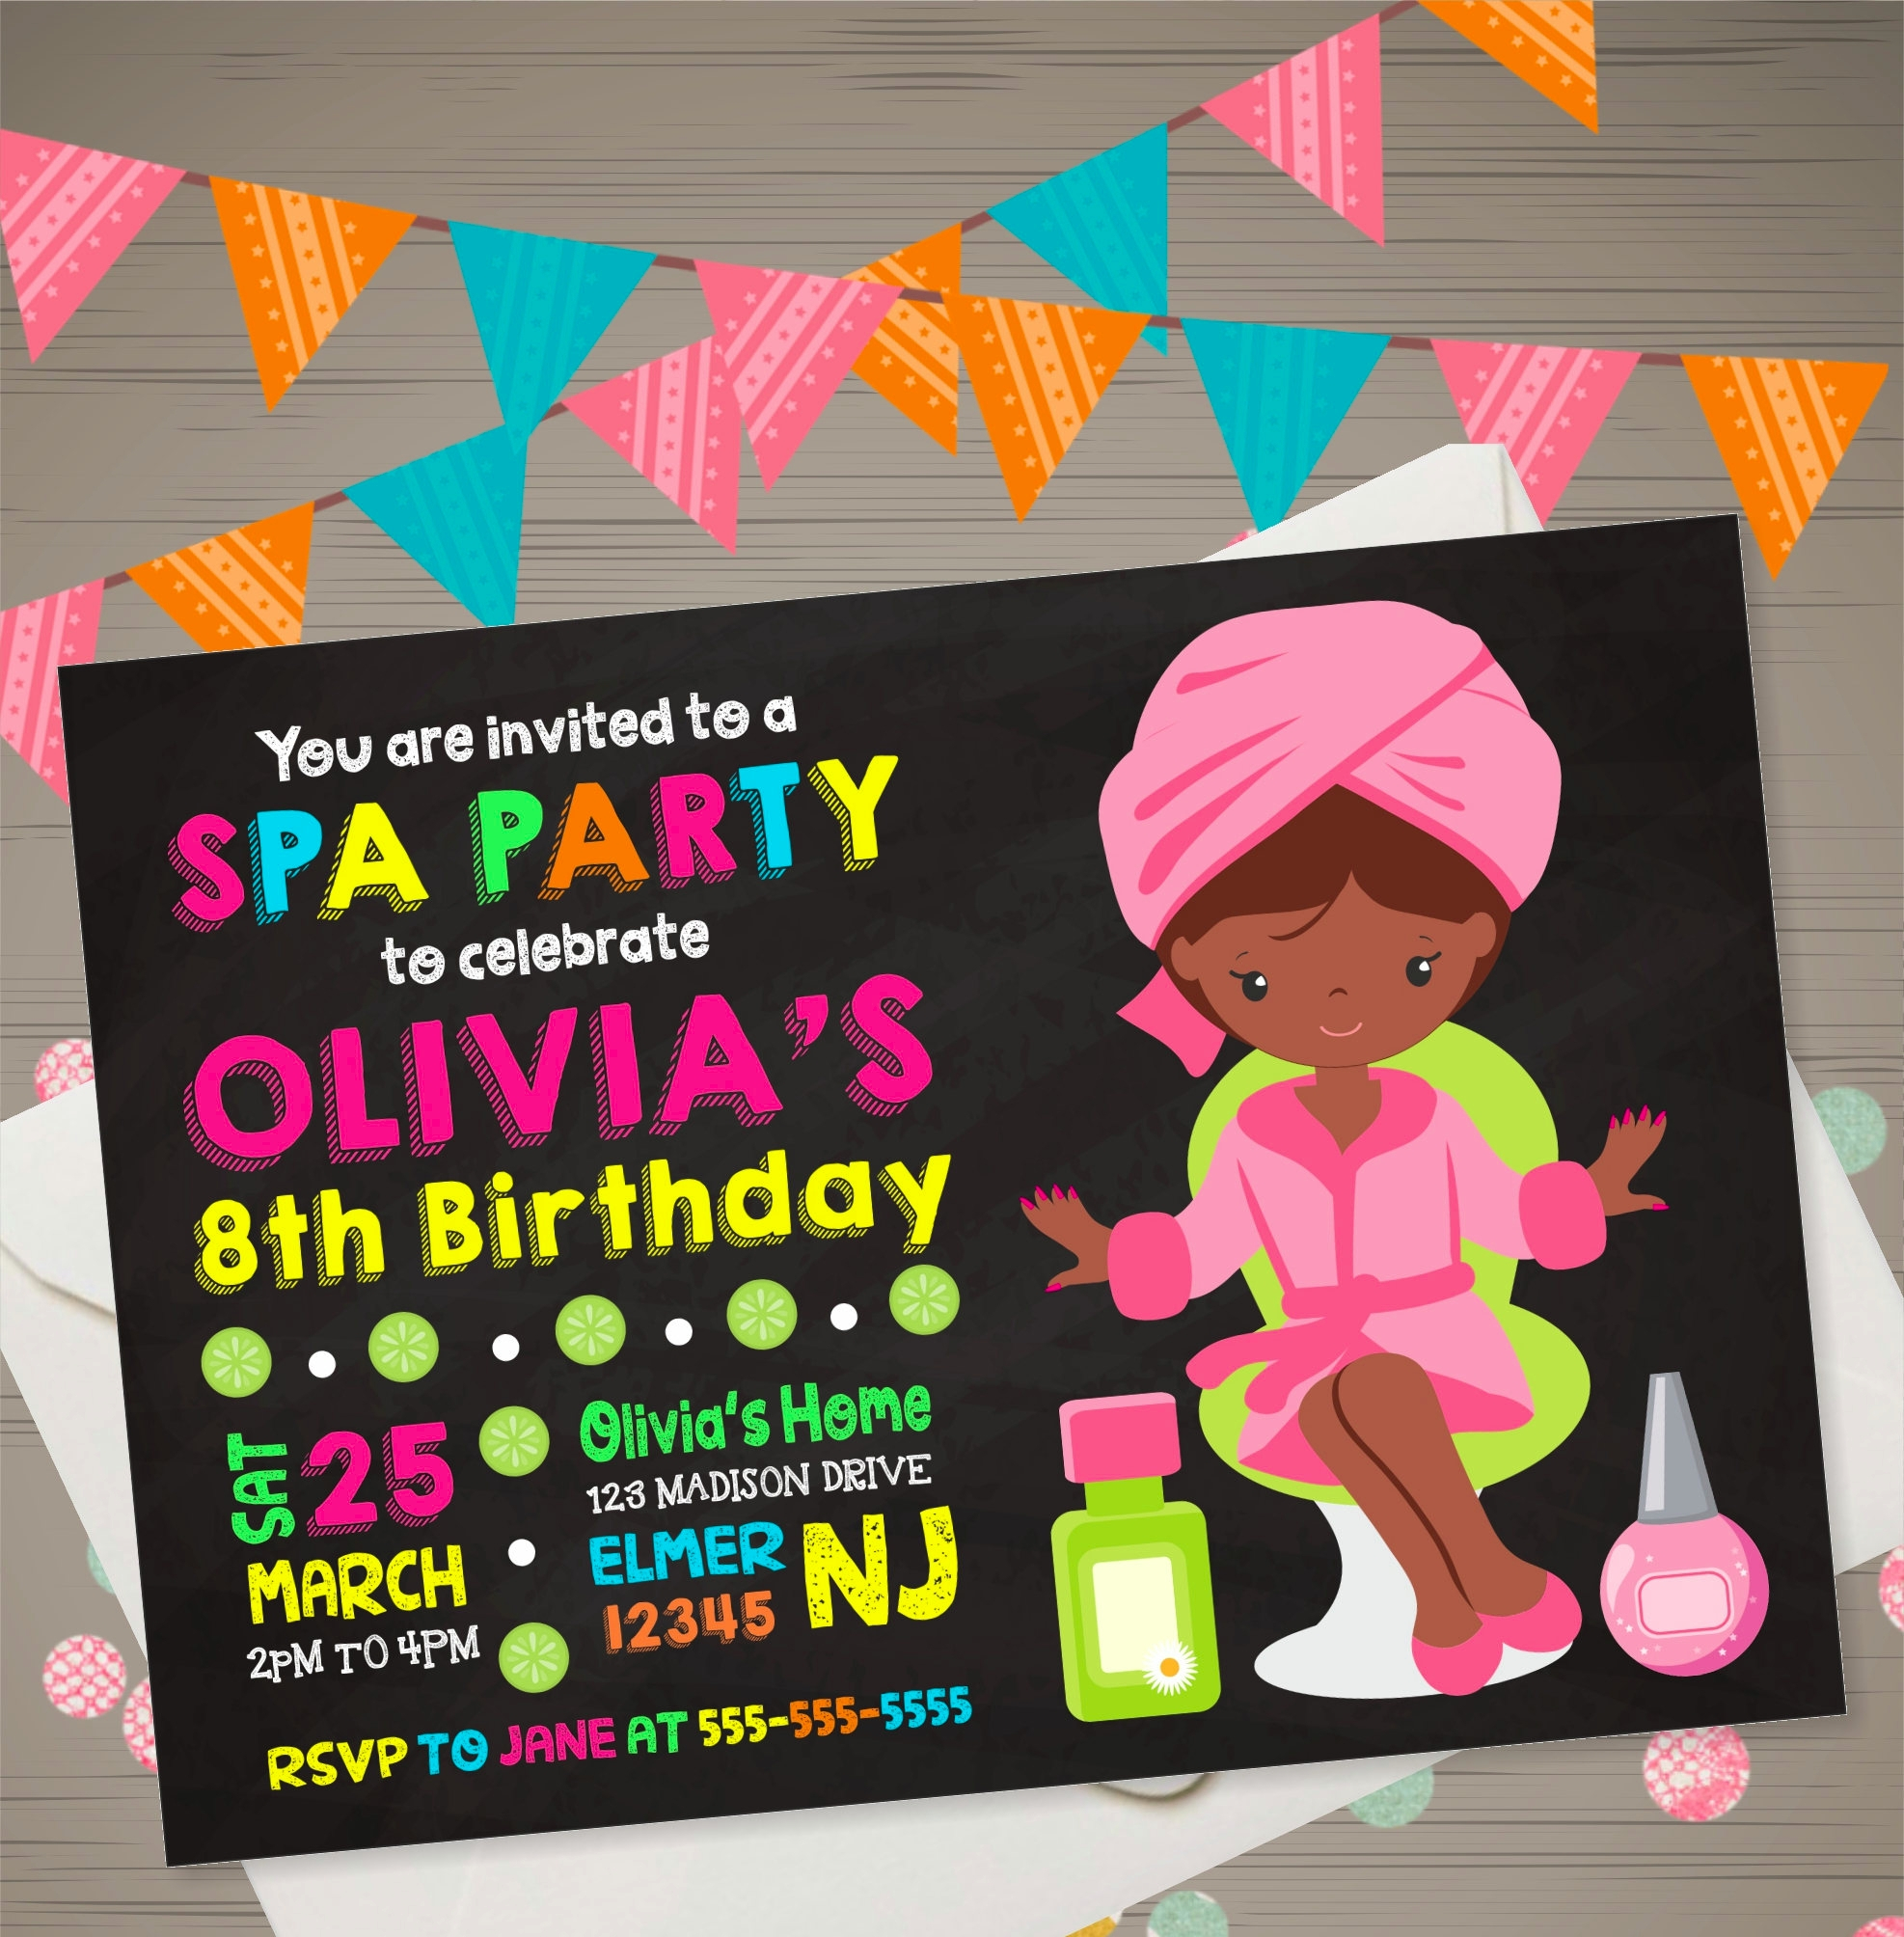 12+ Spa Party Invitation Designs And Examples  Psd, Ai